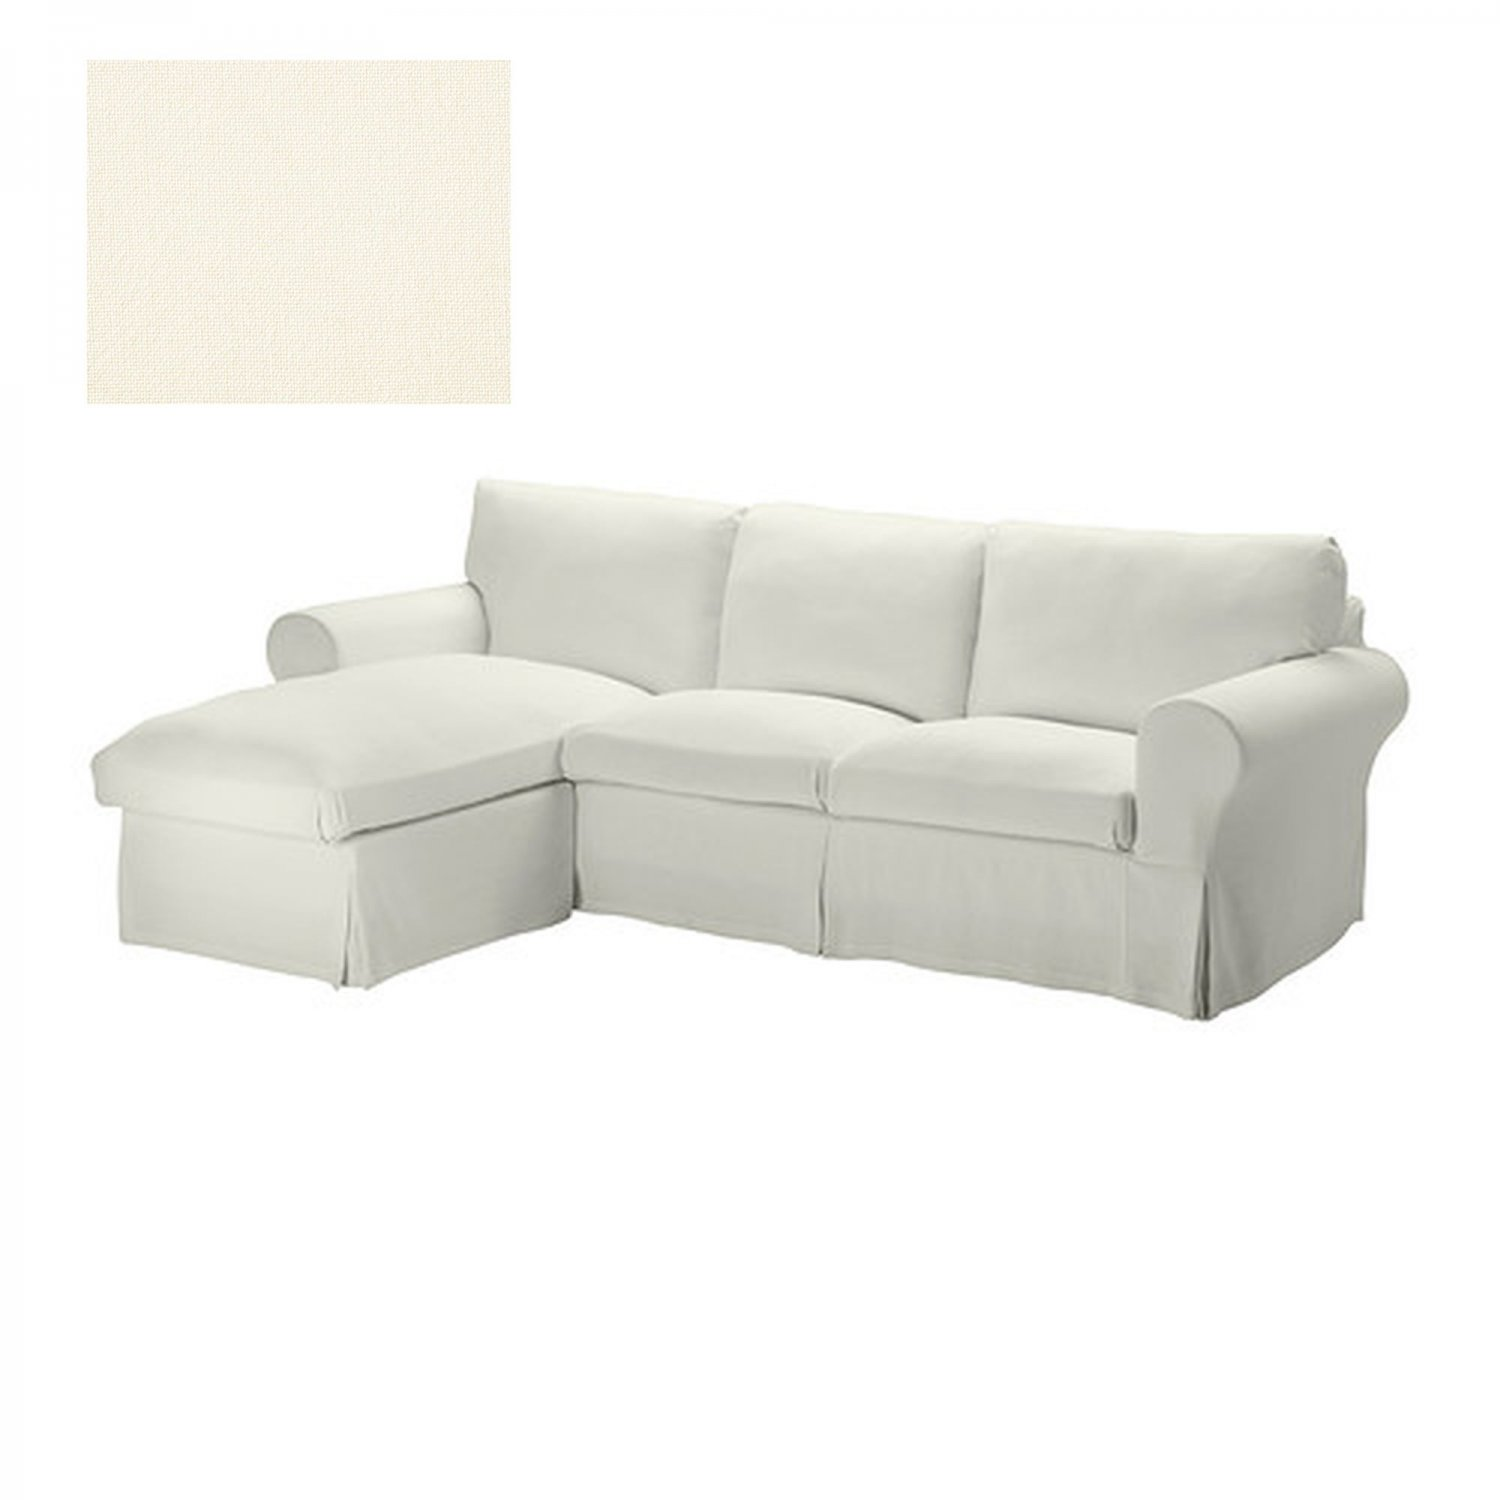 Ikea ektorp loveseat sofa w chaise slipcover 3 seat for Daybed cushion ikea